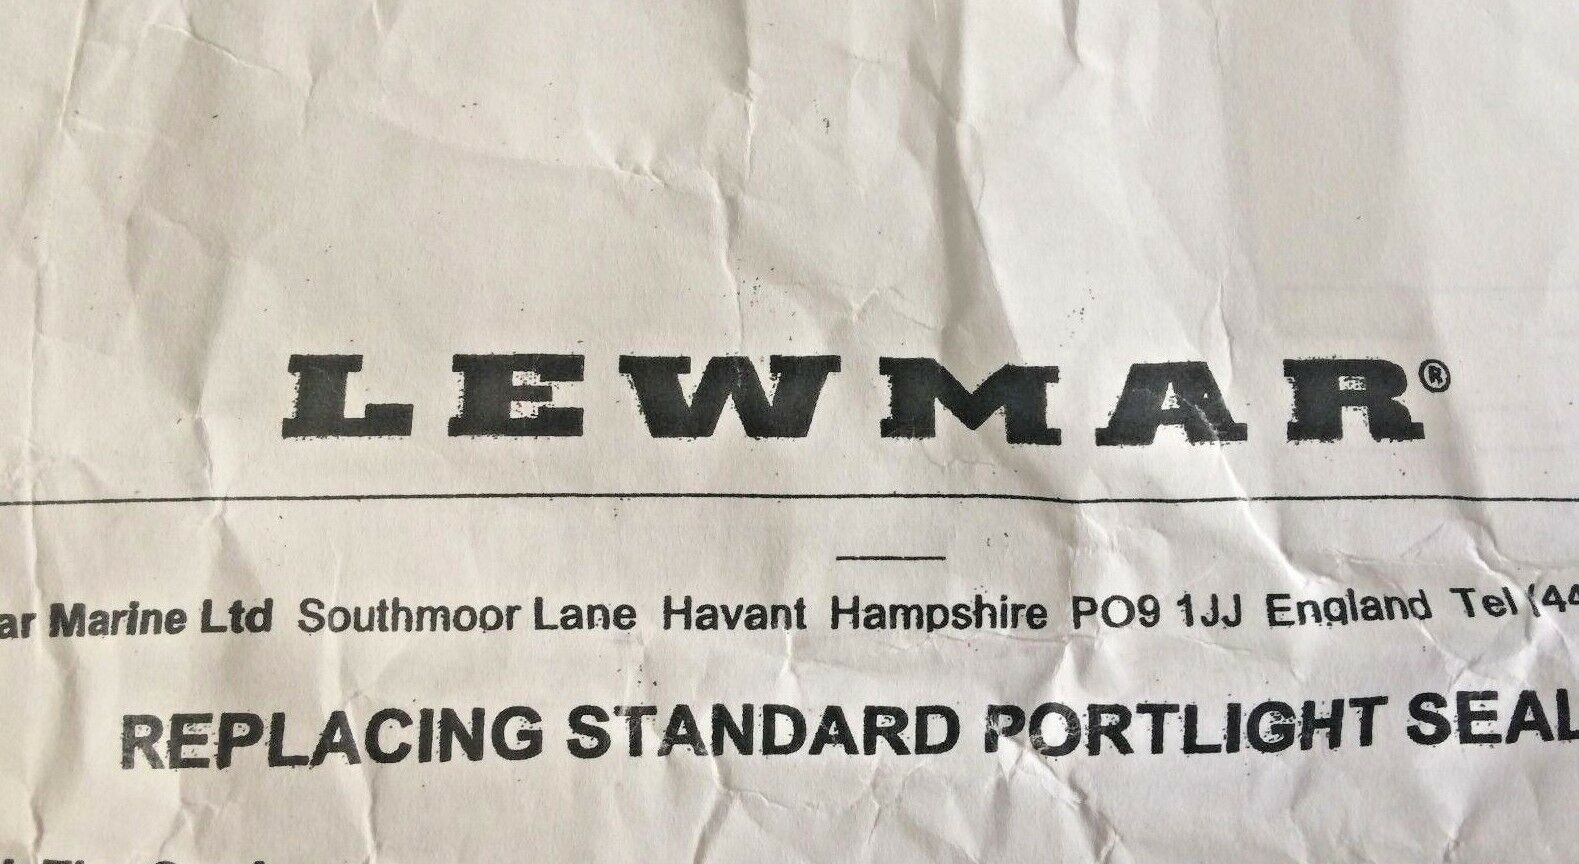 LEWMAR Old Standard Portlight   Replacment Seals   Choose size